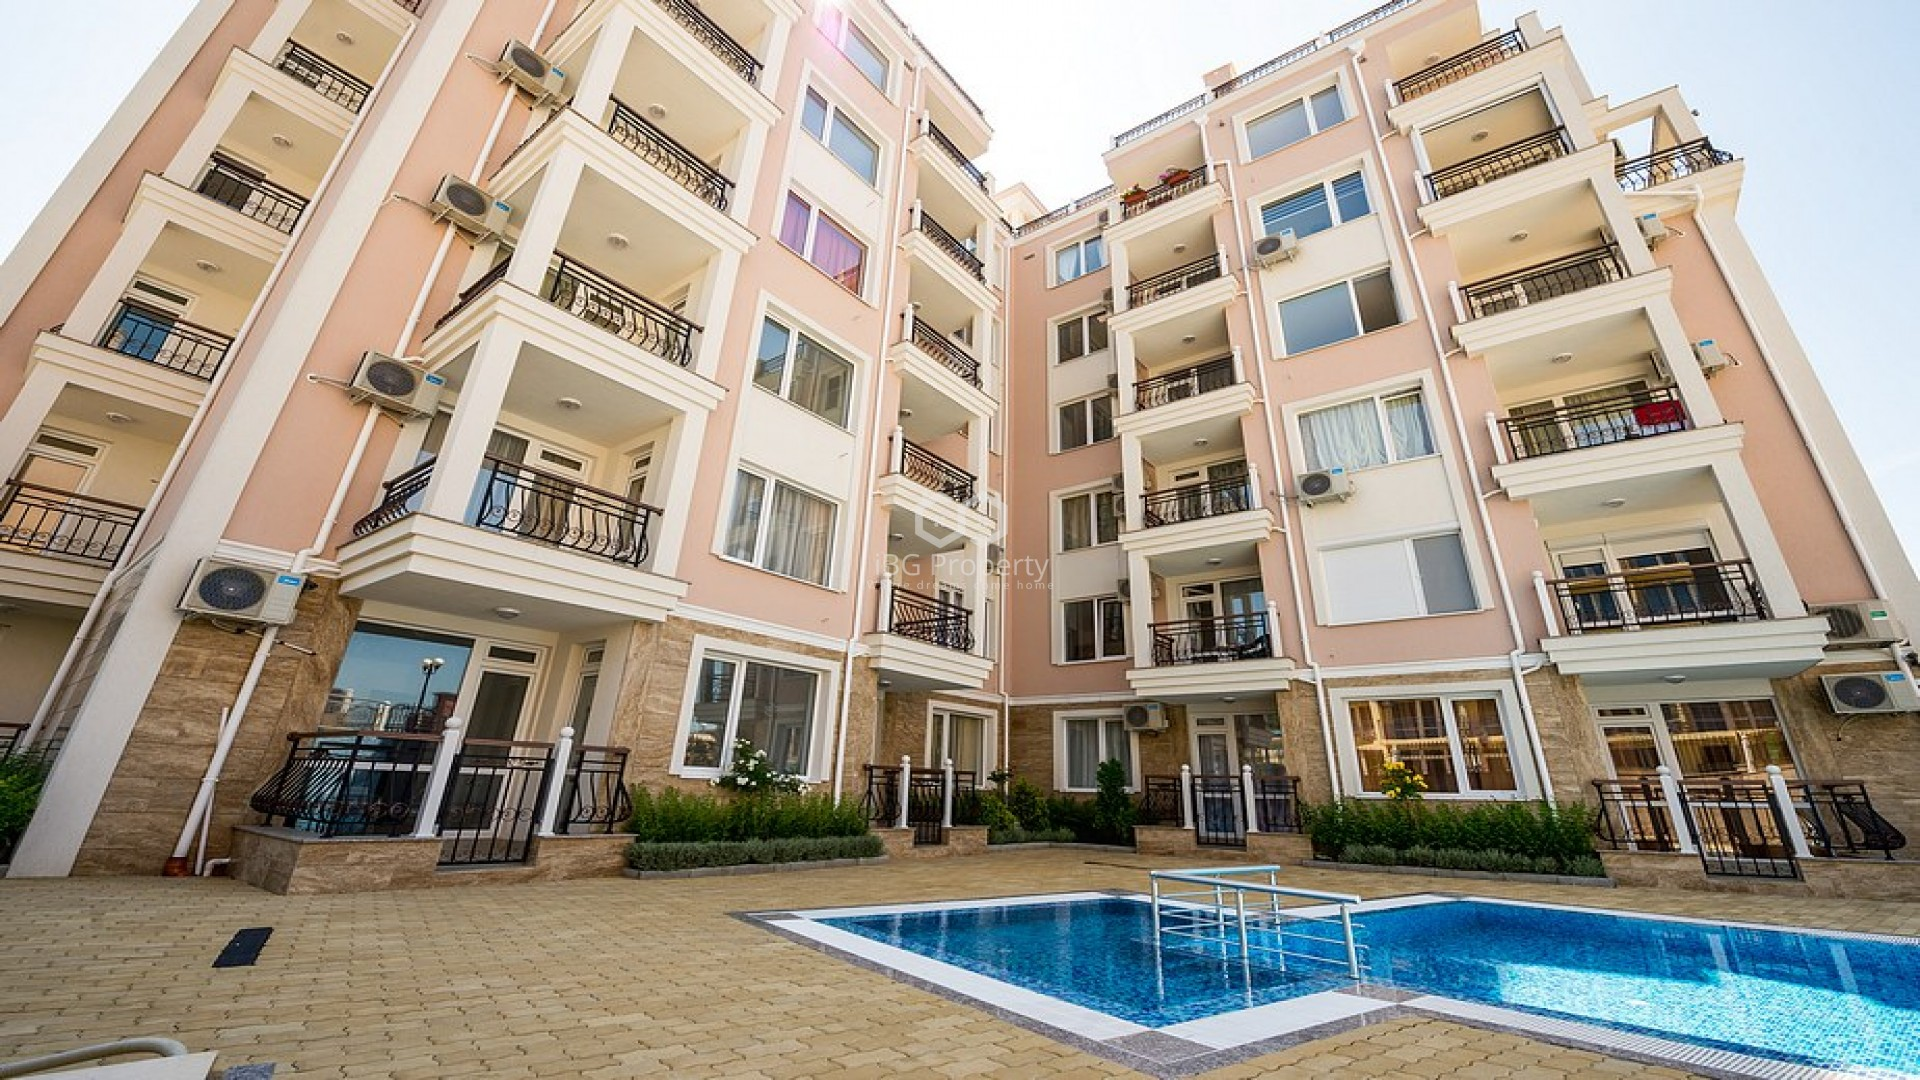 One bedroom apartment Sveti-vlas 81 m2